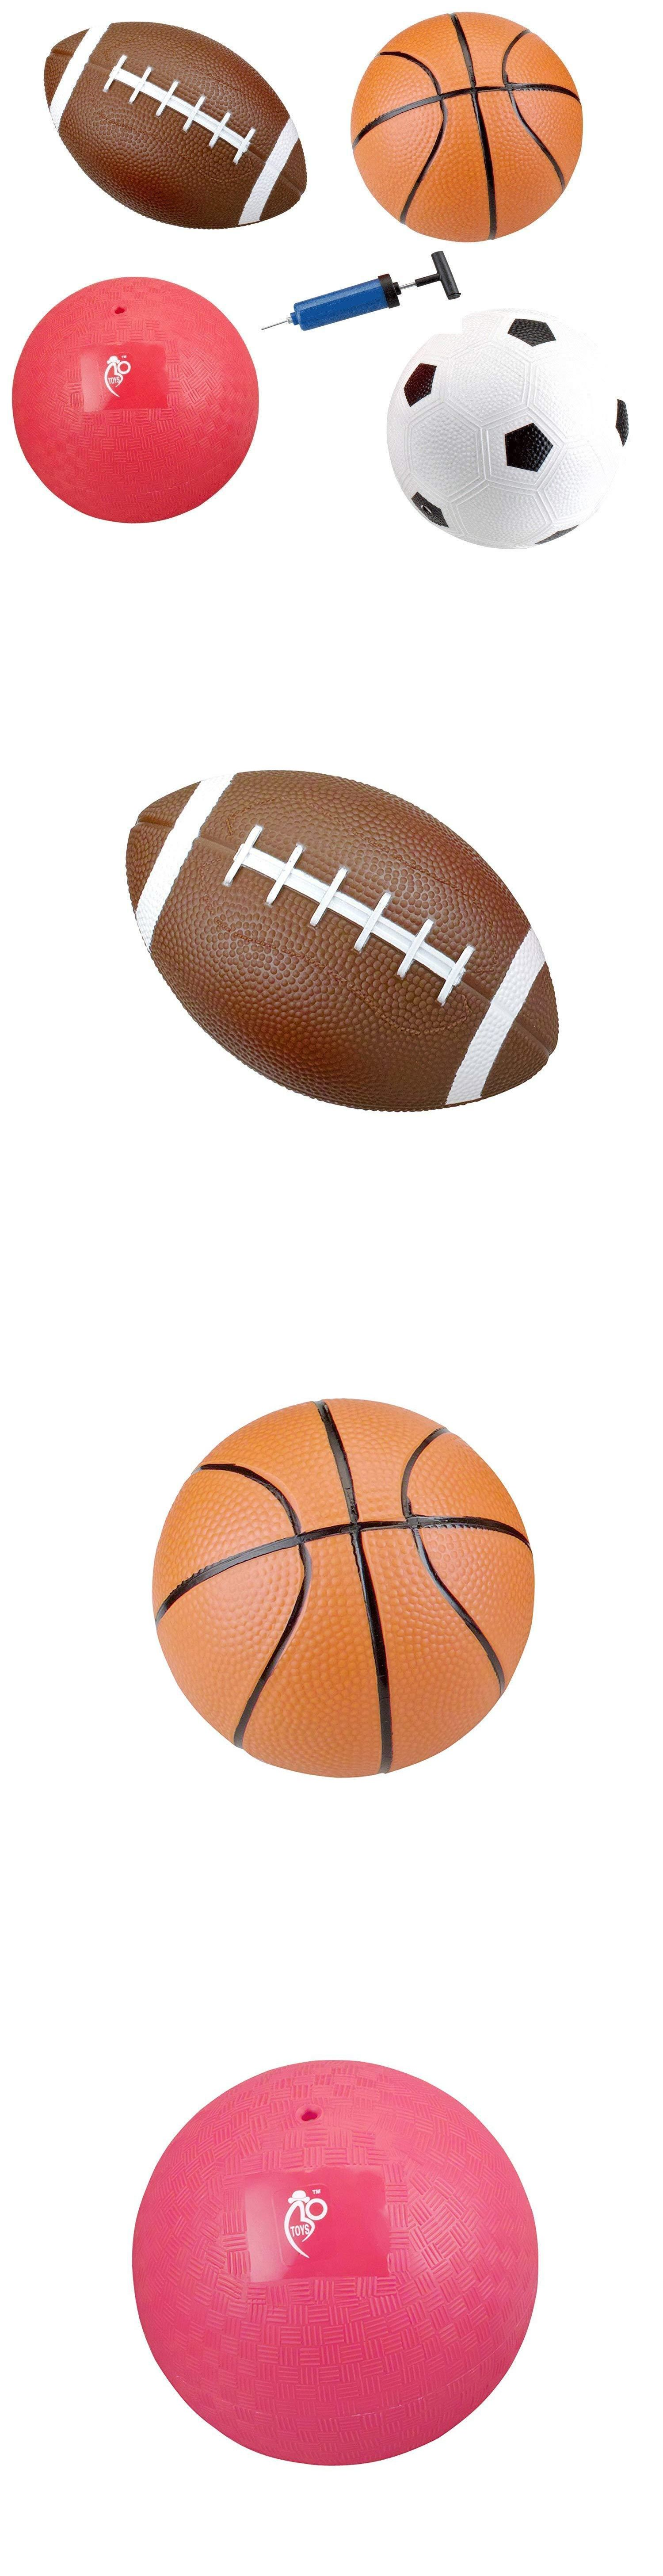 Balls Frisbees And Boomerangs 19017 Set Of 4 Inflatable Sports Balls For Kids Soccer Ball Basketball Football Vo B Kids Soccer Soccer Ball Sports Balls